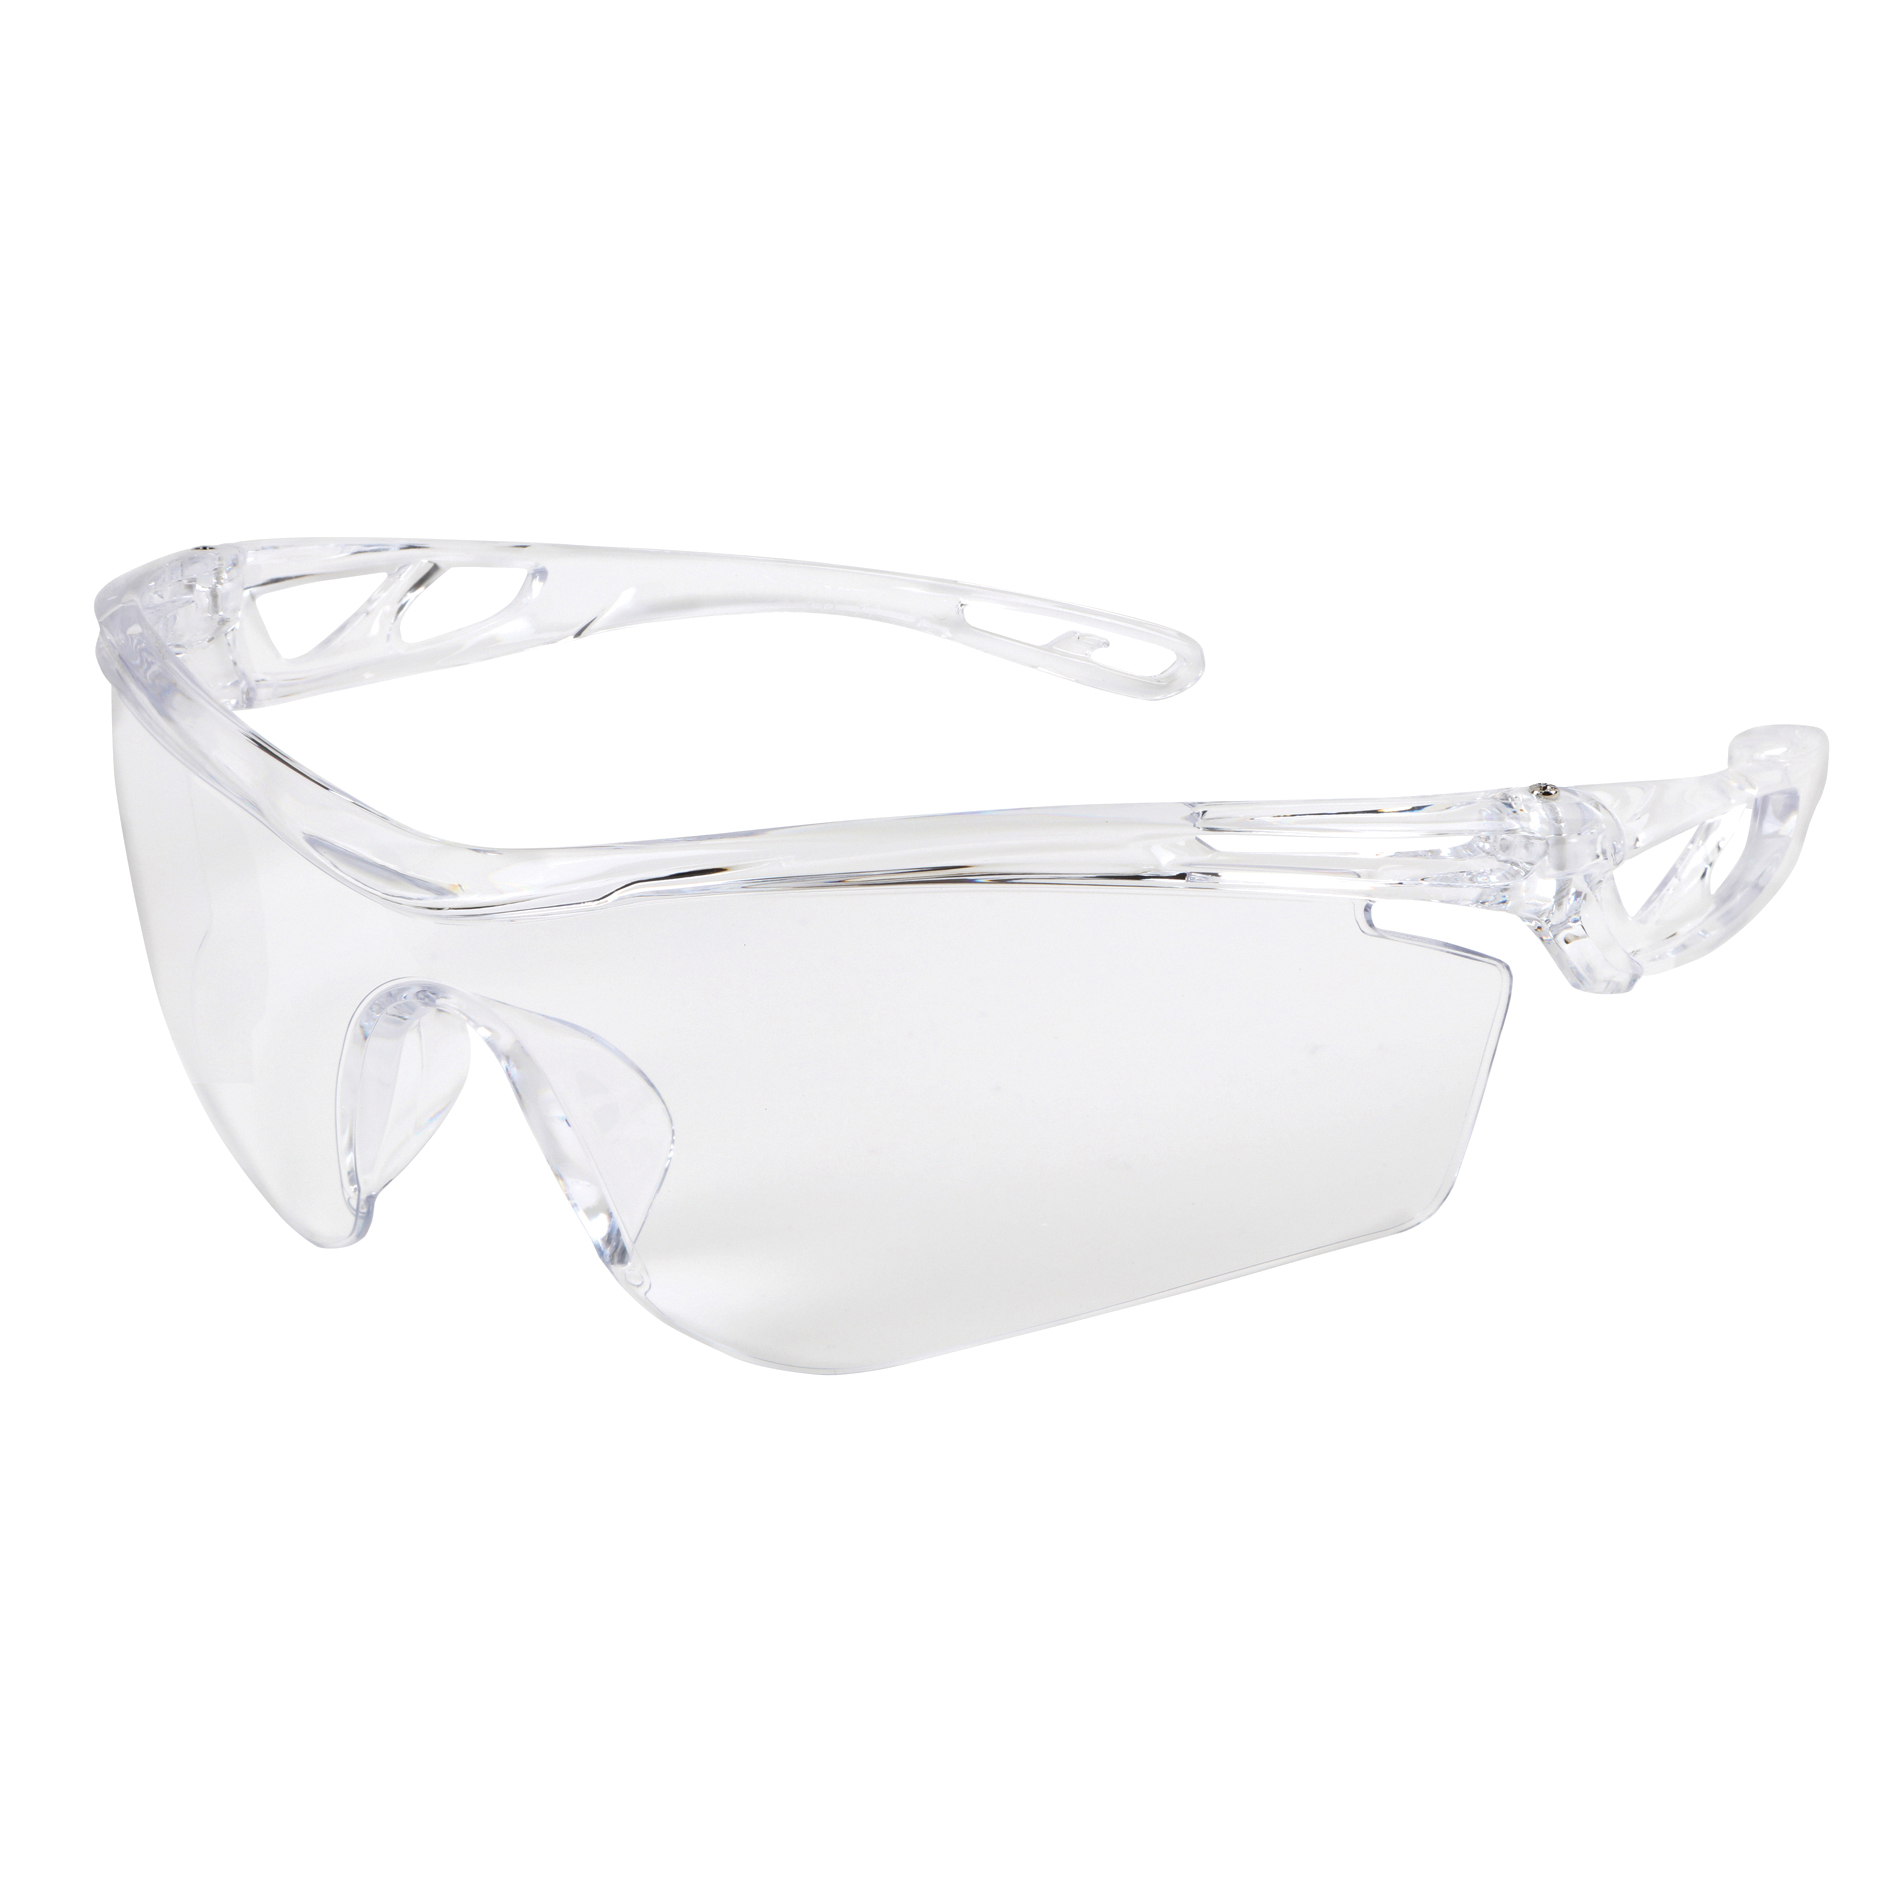 MCR Safety CL410PF Checklite® CL4 Single Lens Safety Glass, MAX6® Anti-Fog Lens Coating, Clear Lens, Hollowed Out/Lightweight Frame, Polycarbonate Lens, ANSI Z87.1